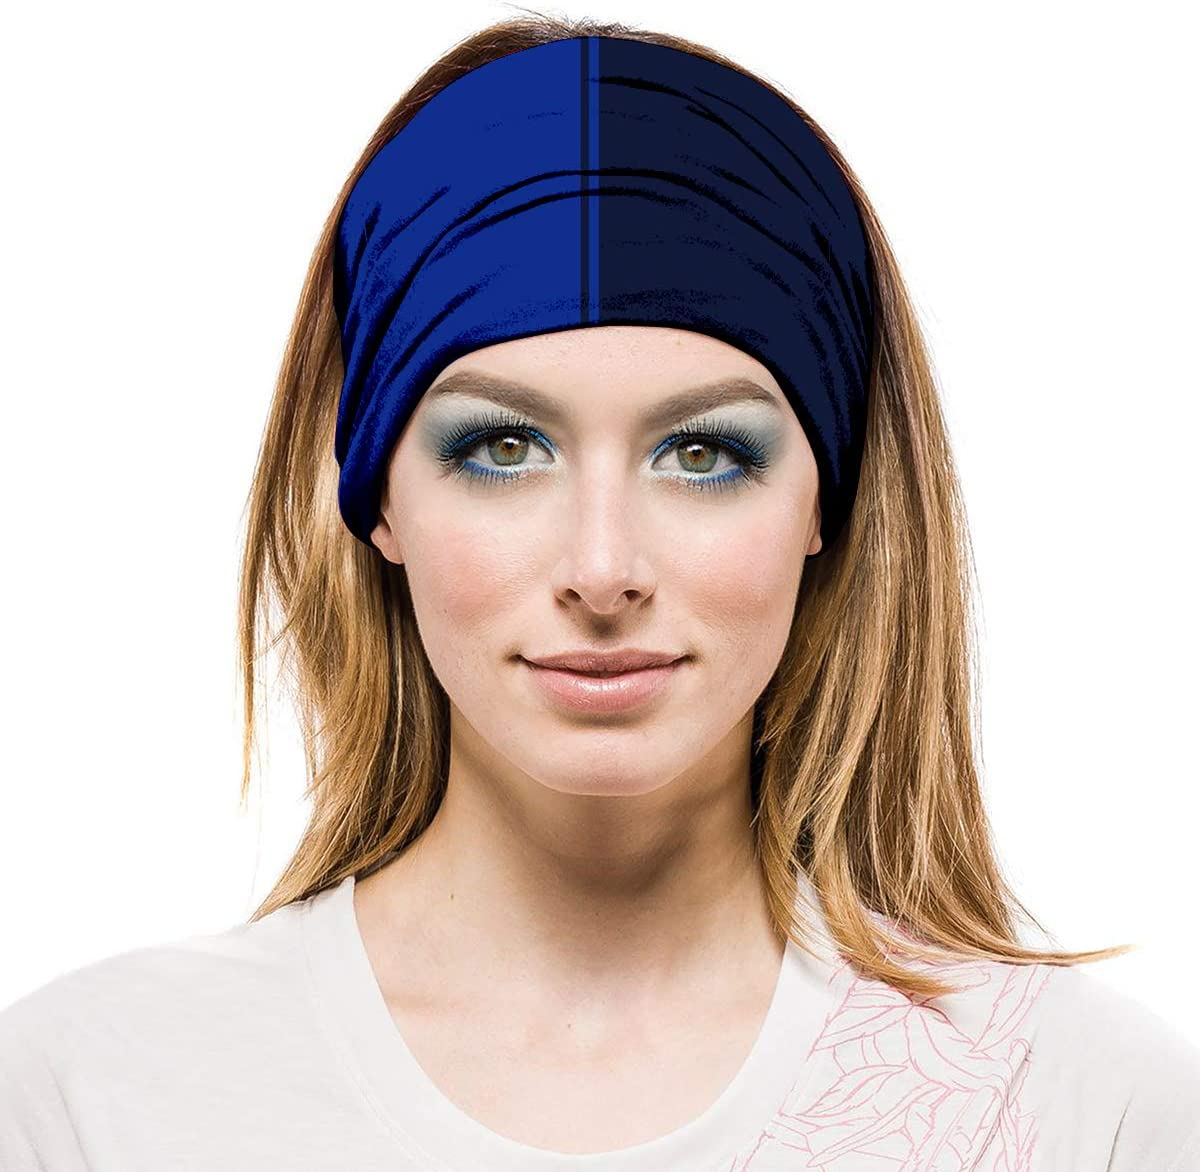 AXBXCX Sport Headband Seamless Face Mask Stretch Moisture Wicking for Women and Men